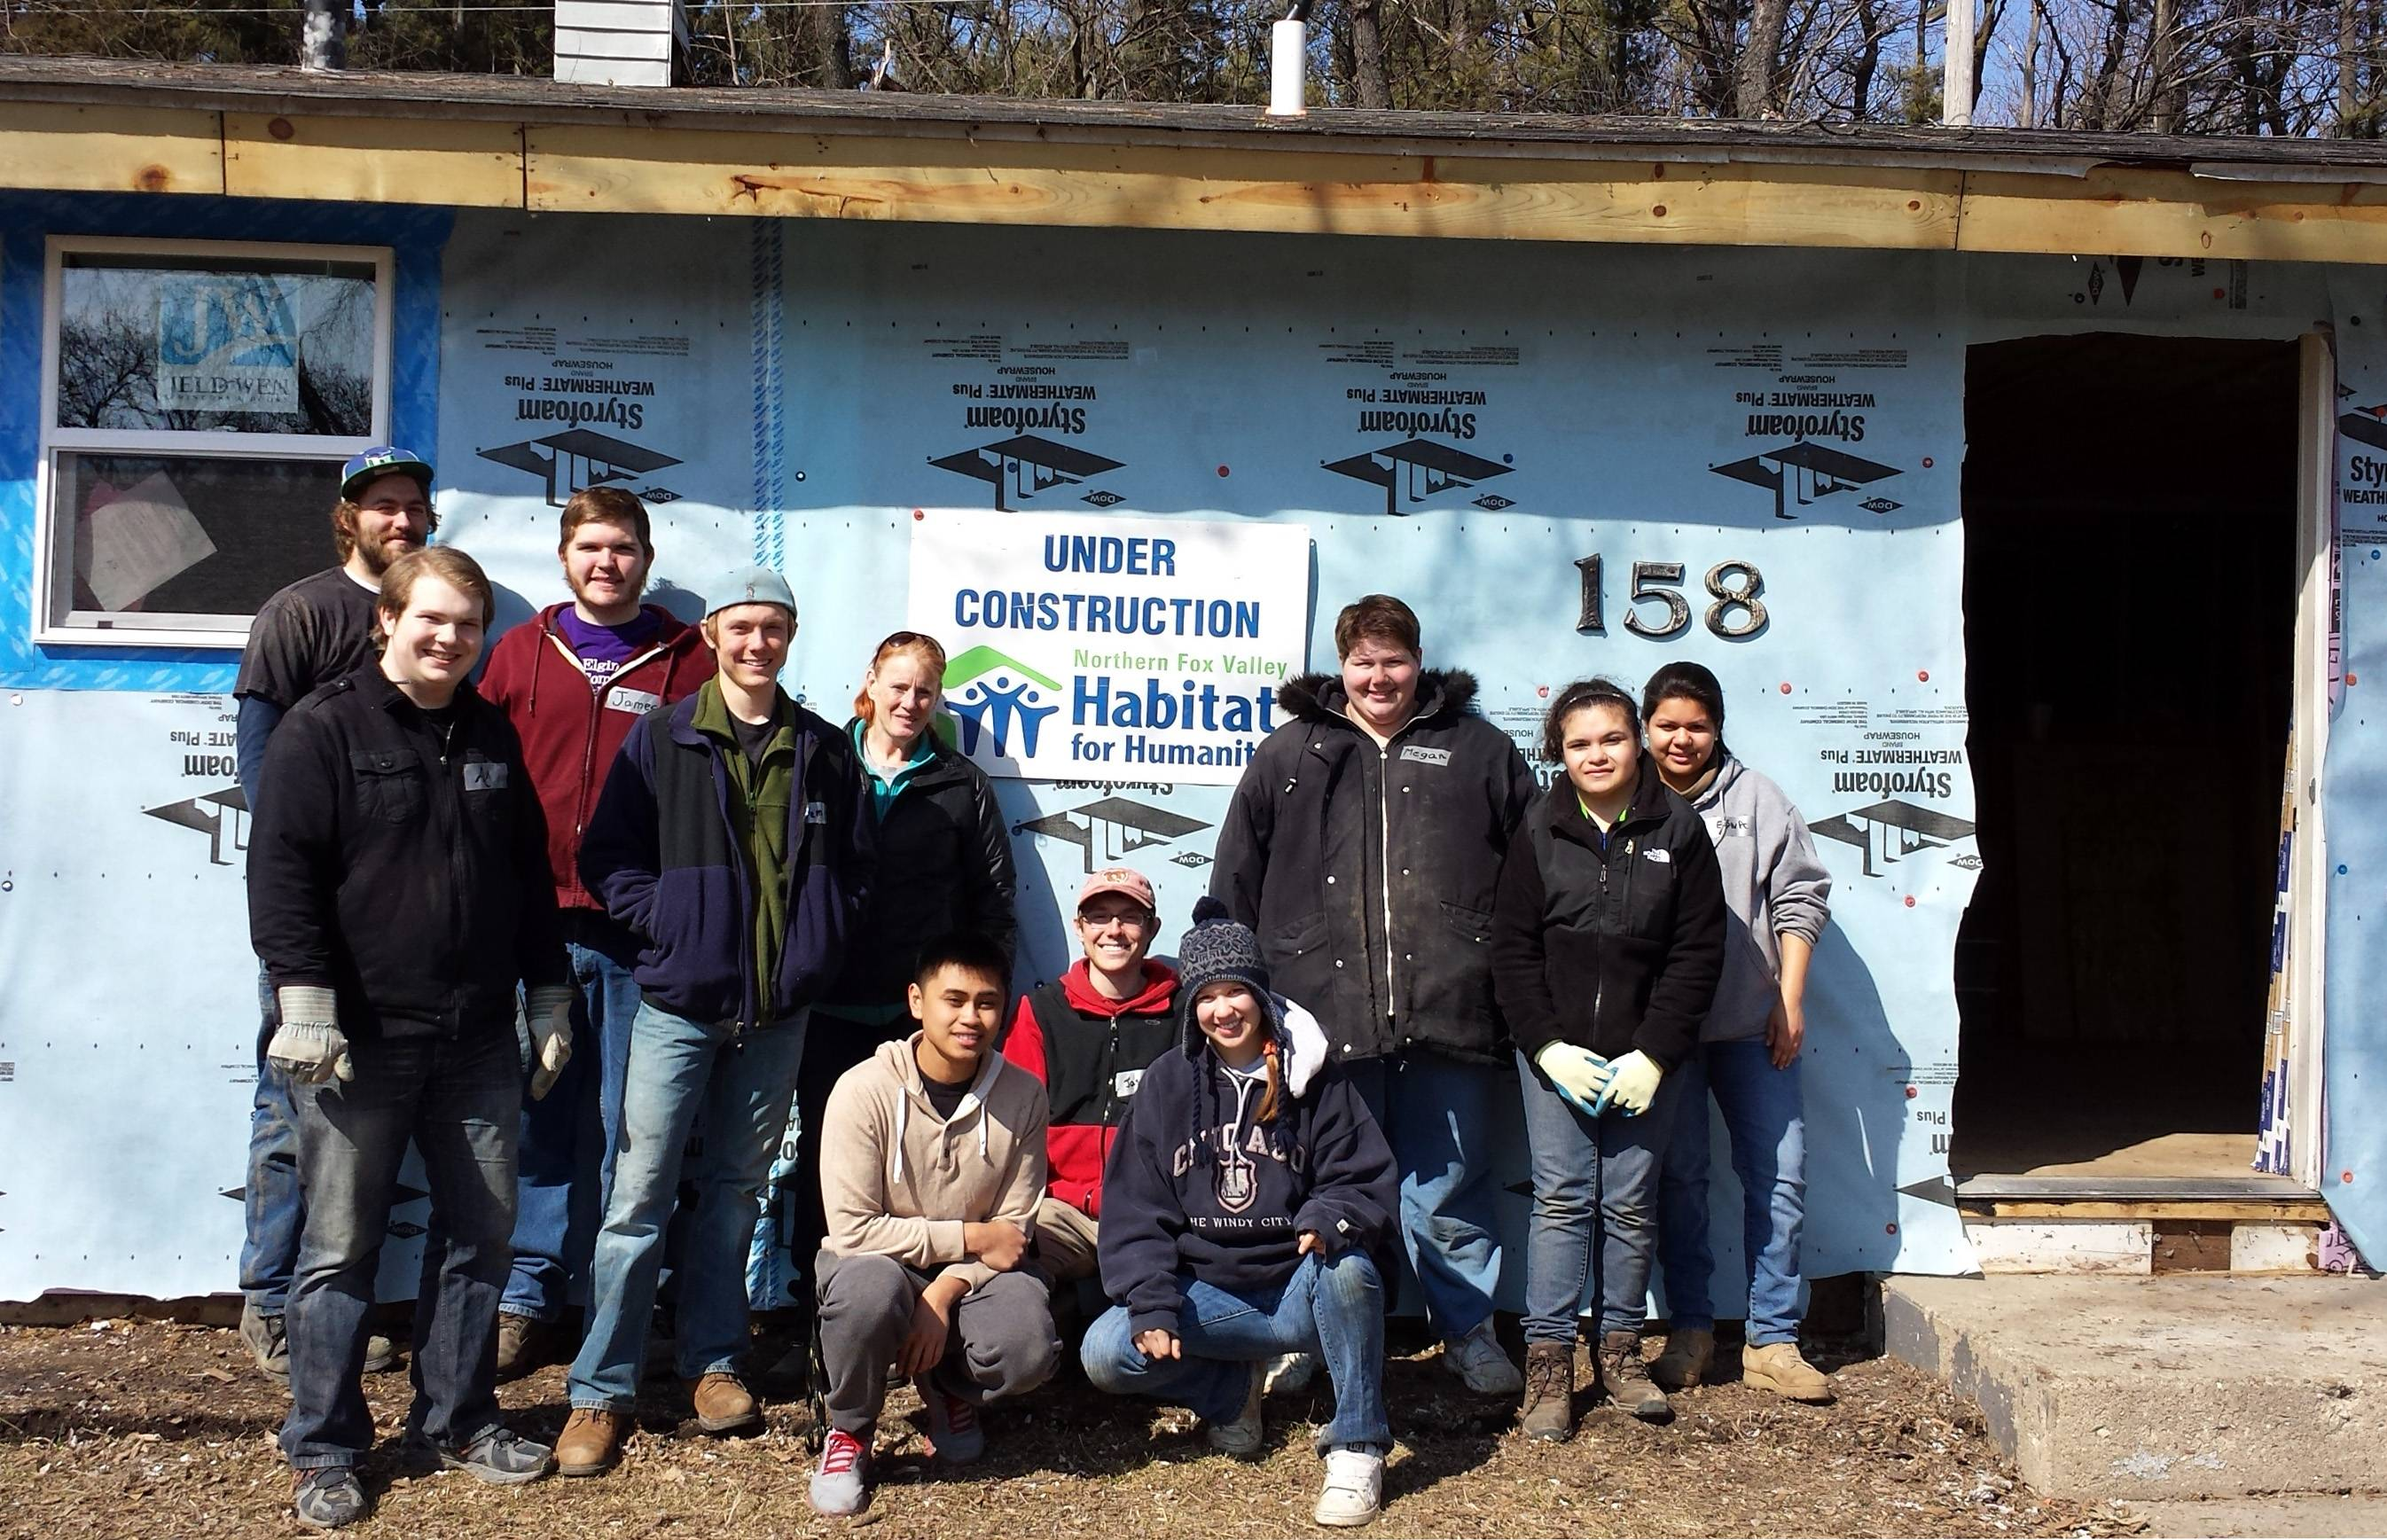 Elgin Community College students participated this week in an Alternative Spring Break program in partnership with Habitat for Humanity of Northern Fox Valley. The volunteer team included, AmeriCorps crew leader Jordan Lyndaker, A.J. Taylor, James Warner, Jeremy Bauer, Laura Roesetti, Eric Orpia, Jason Bauer, Libby Harvey, Megan Kathka, Alexis Romero, Edna Avitia.